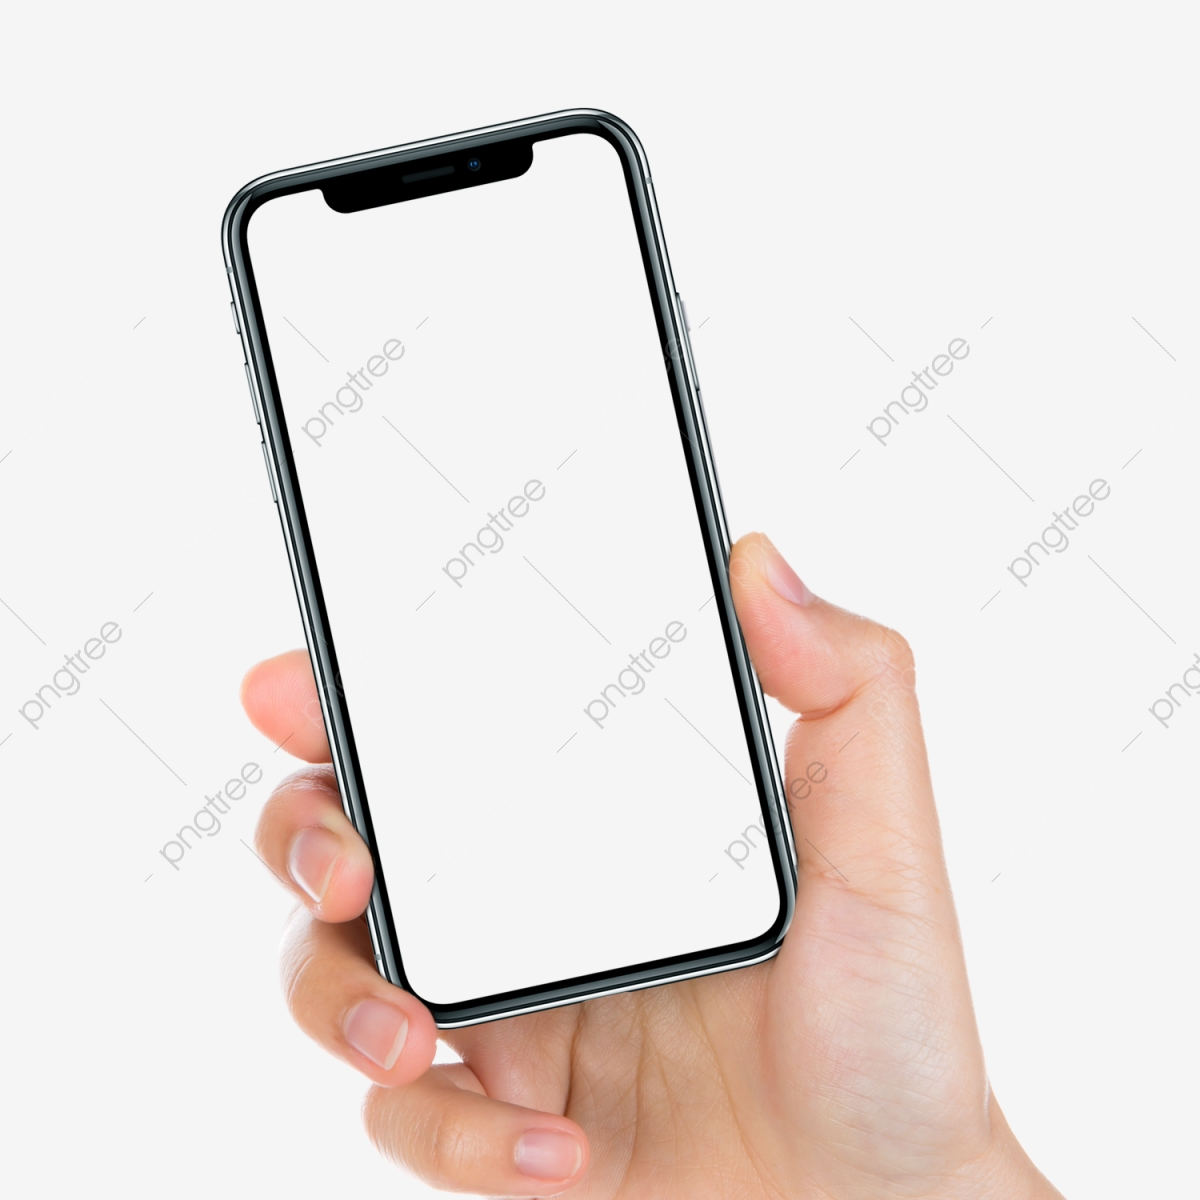 Iphone x actual size. In hand mockup mobile